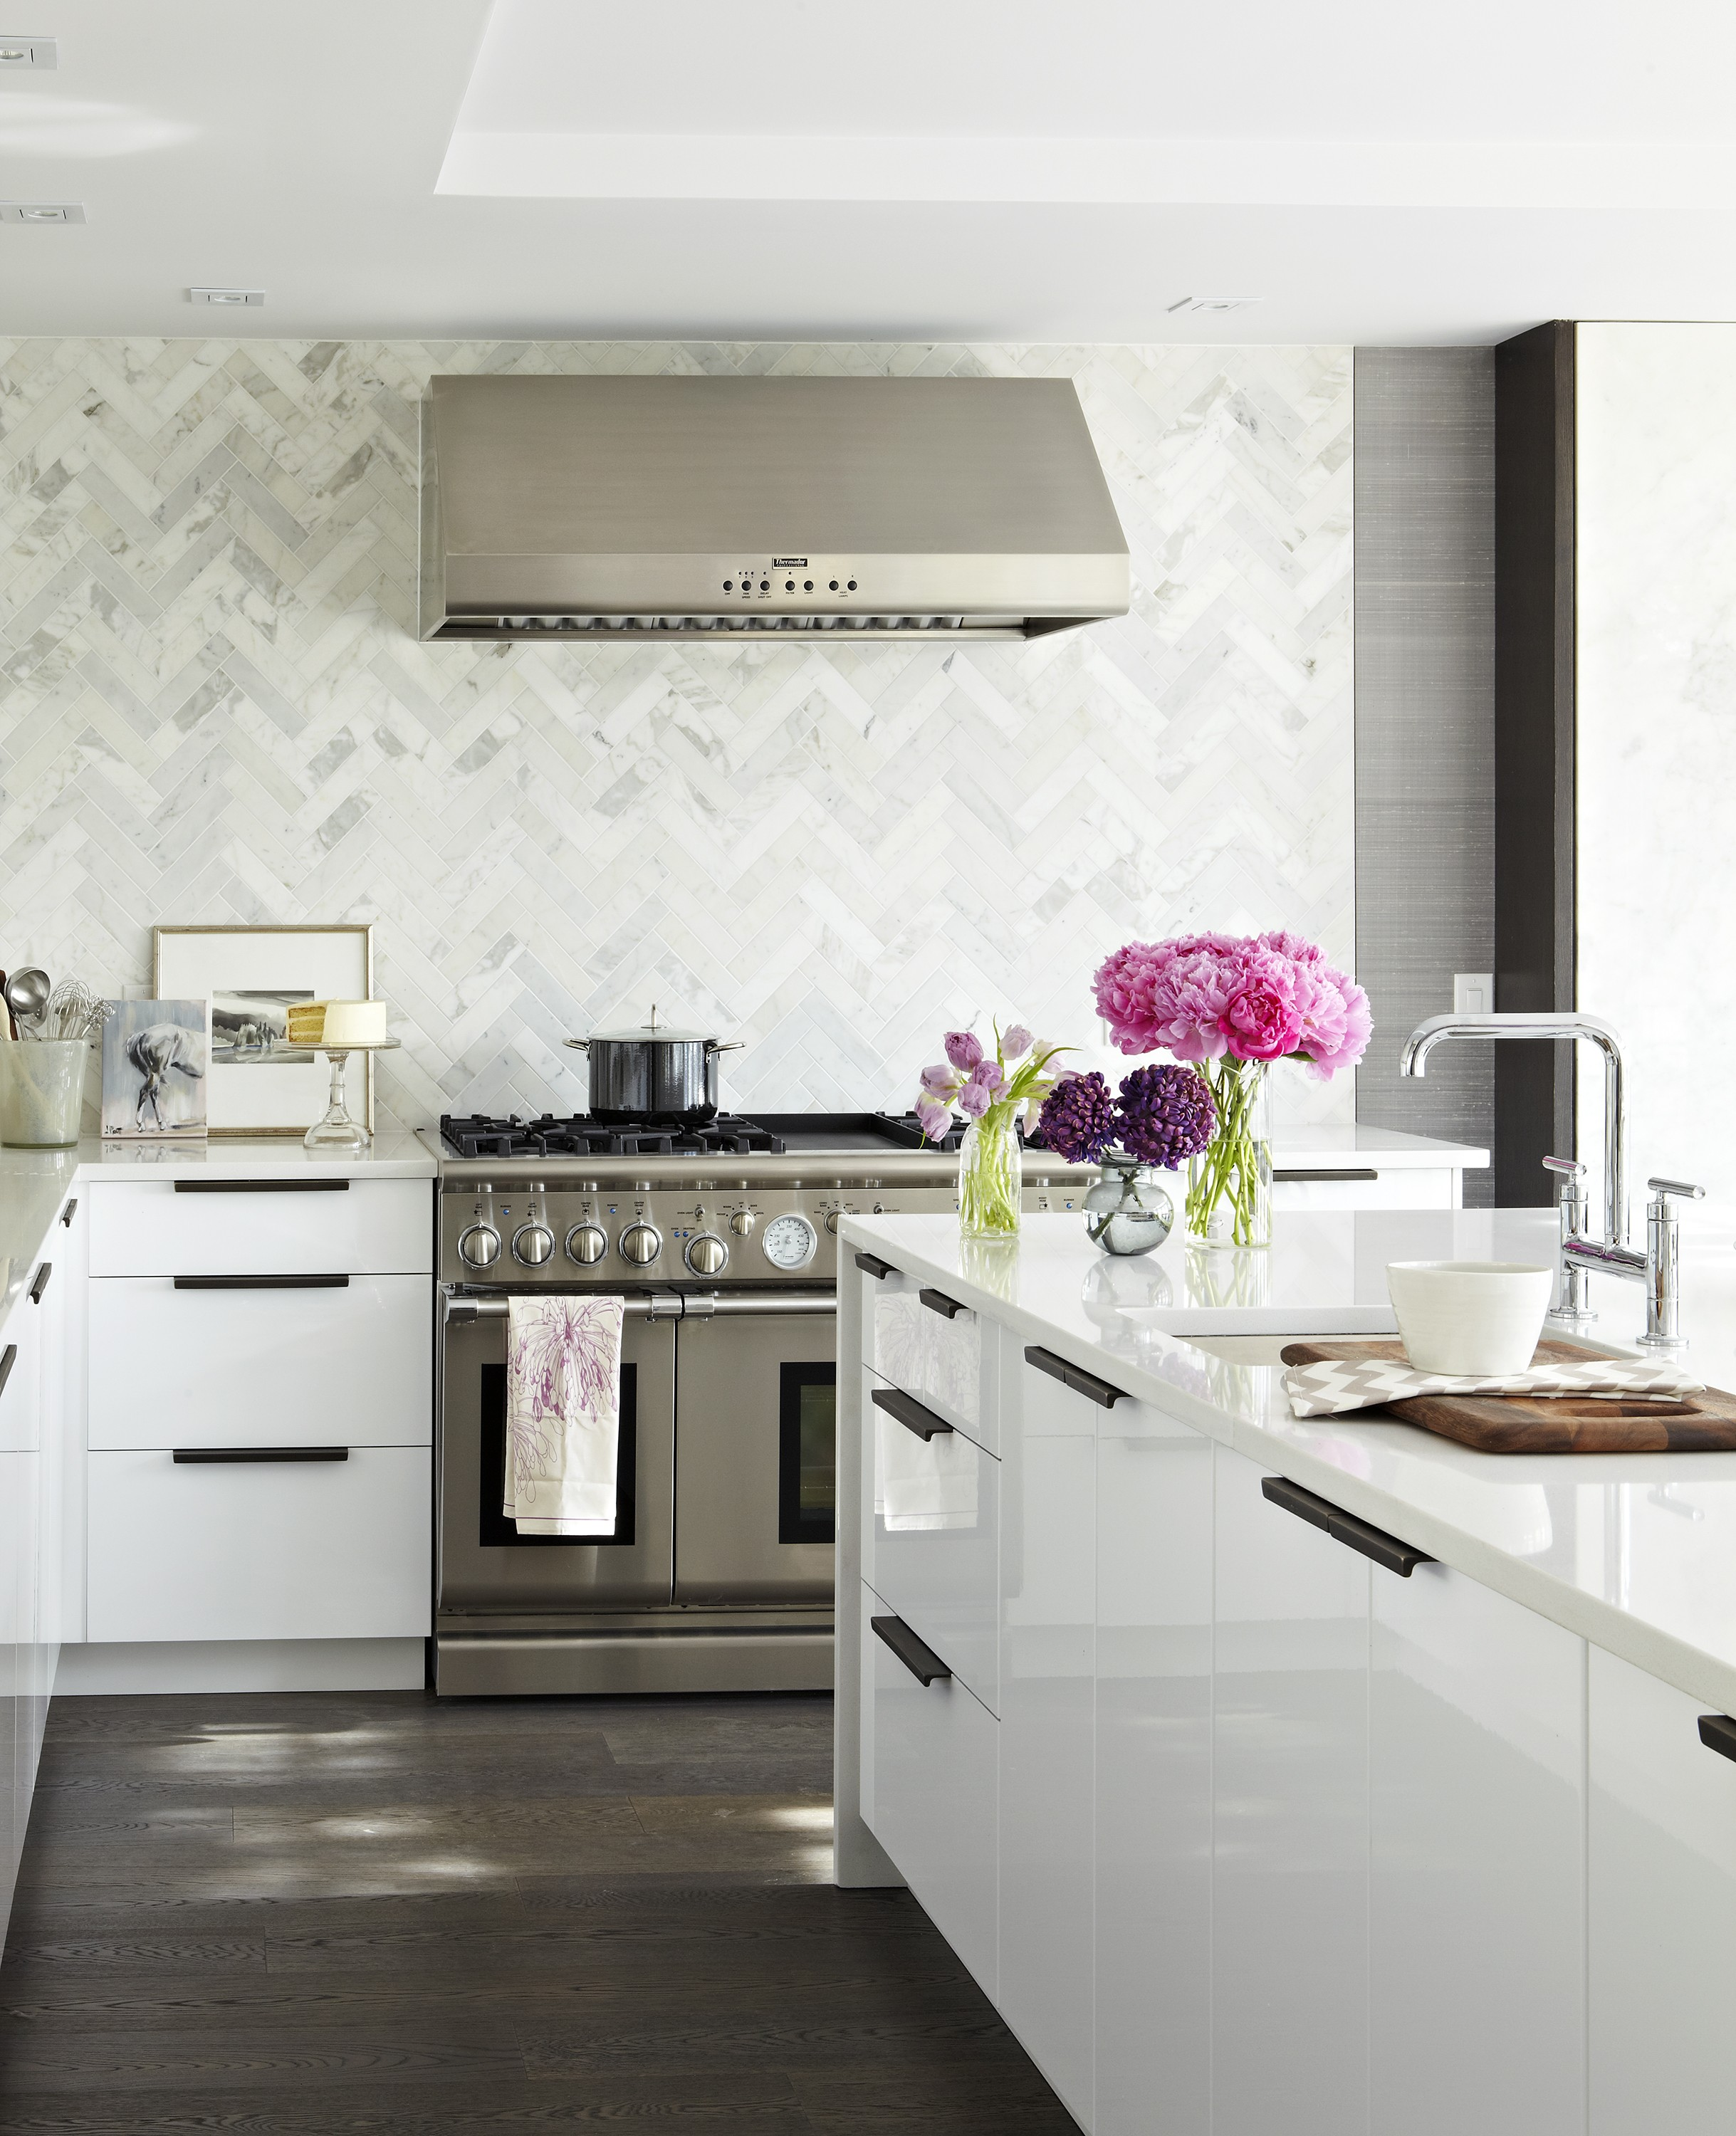 Style At Home Erins Kitchen 8234 2